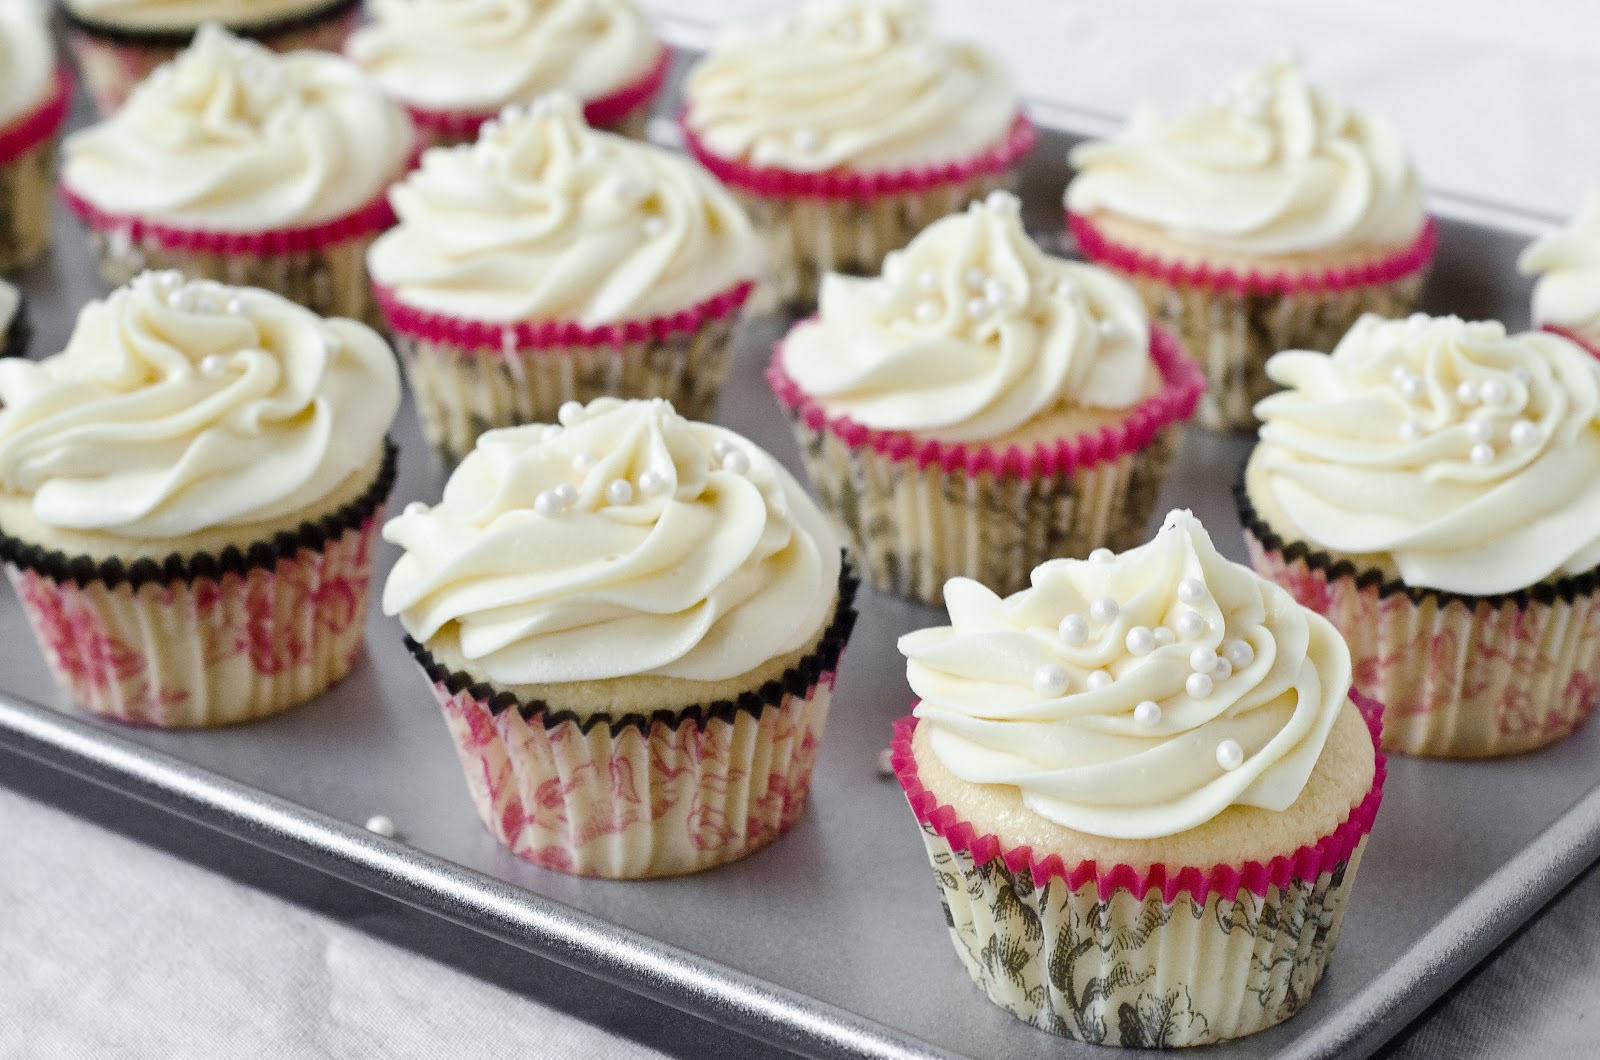 White Chocolate Cupcakes with Cream Cheese Frosting - The Fig Tree